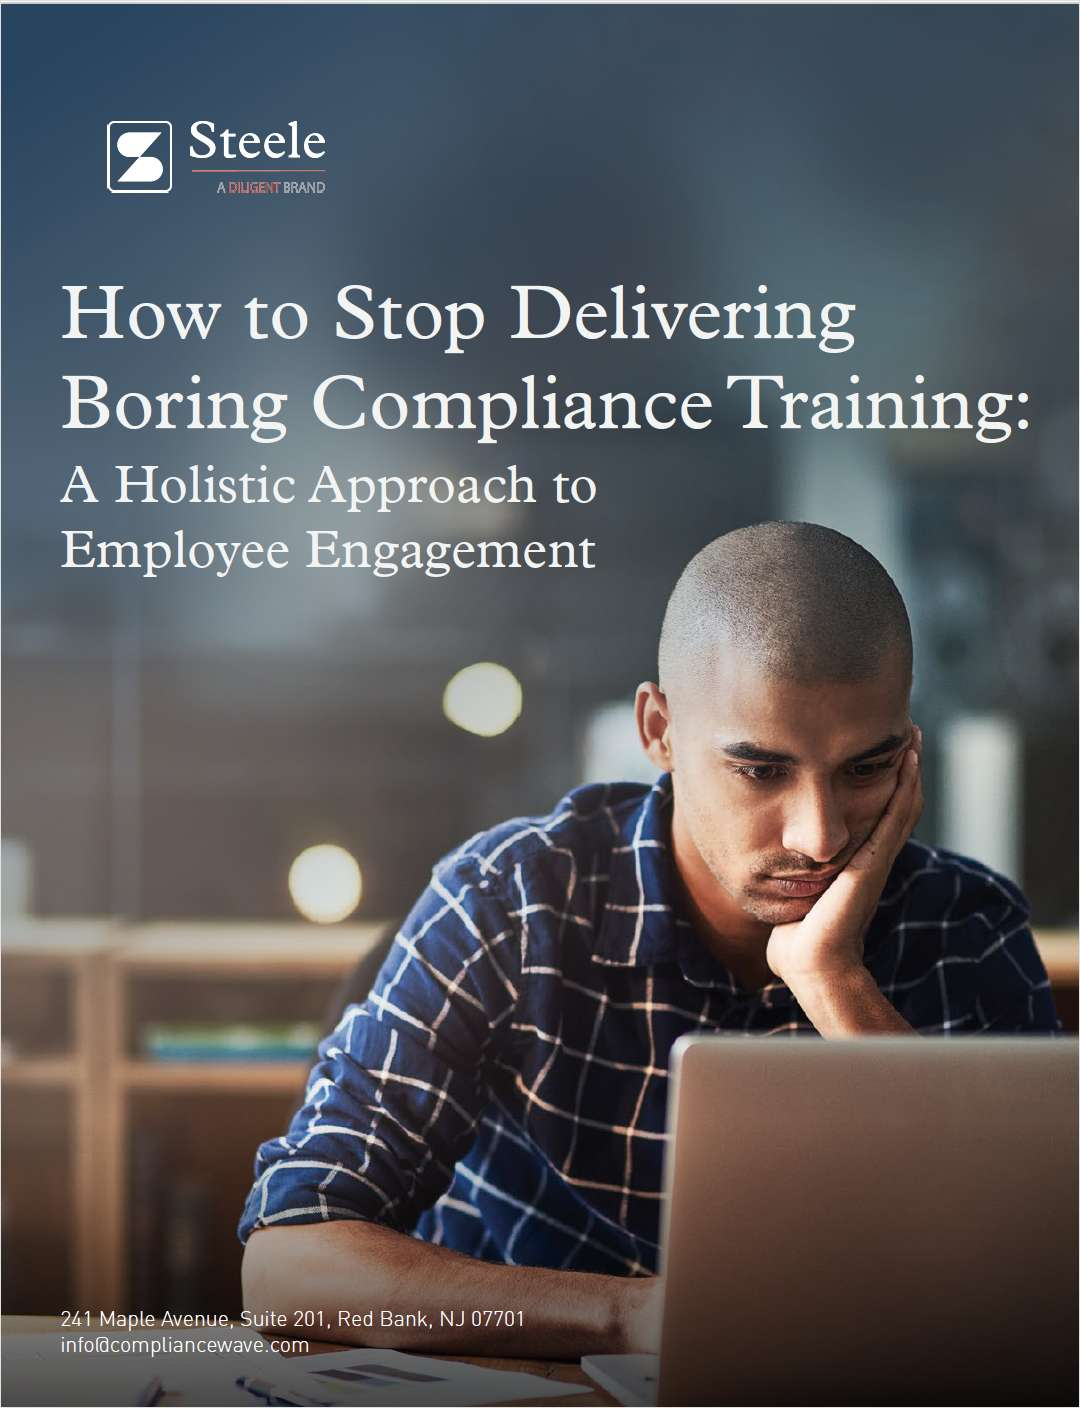 How to Stop Delivering Boring Compliance Training: A Holistic Approach to Employee Engagement